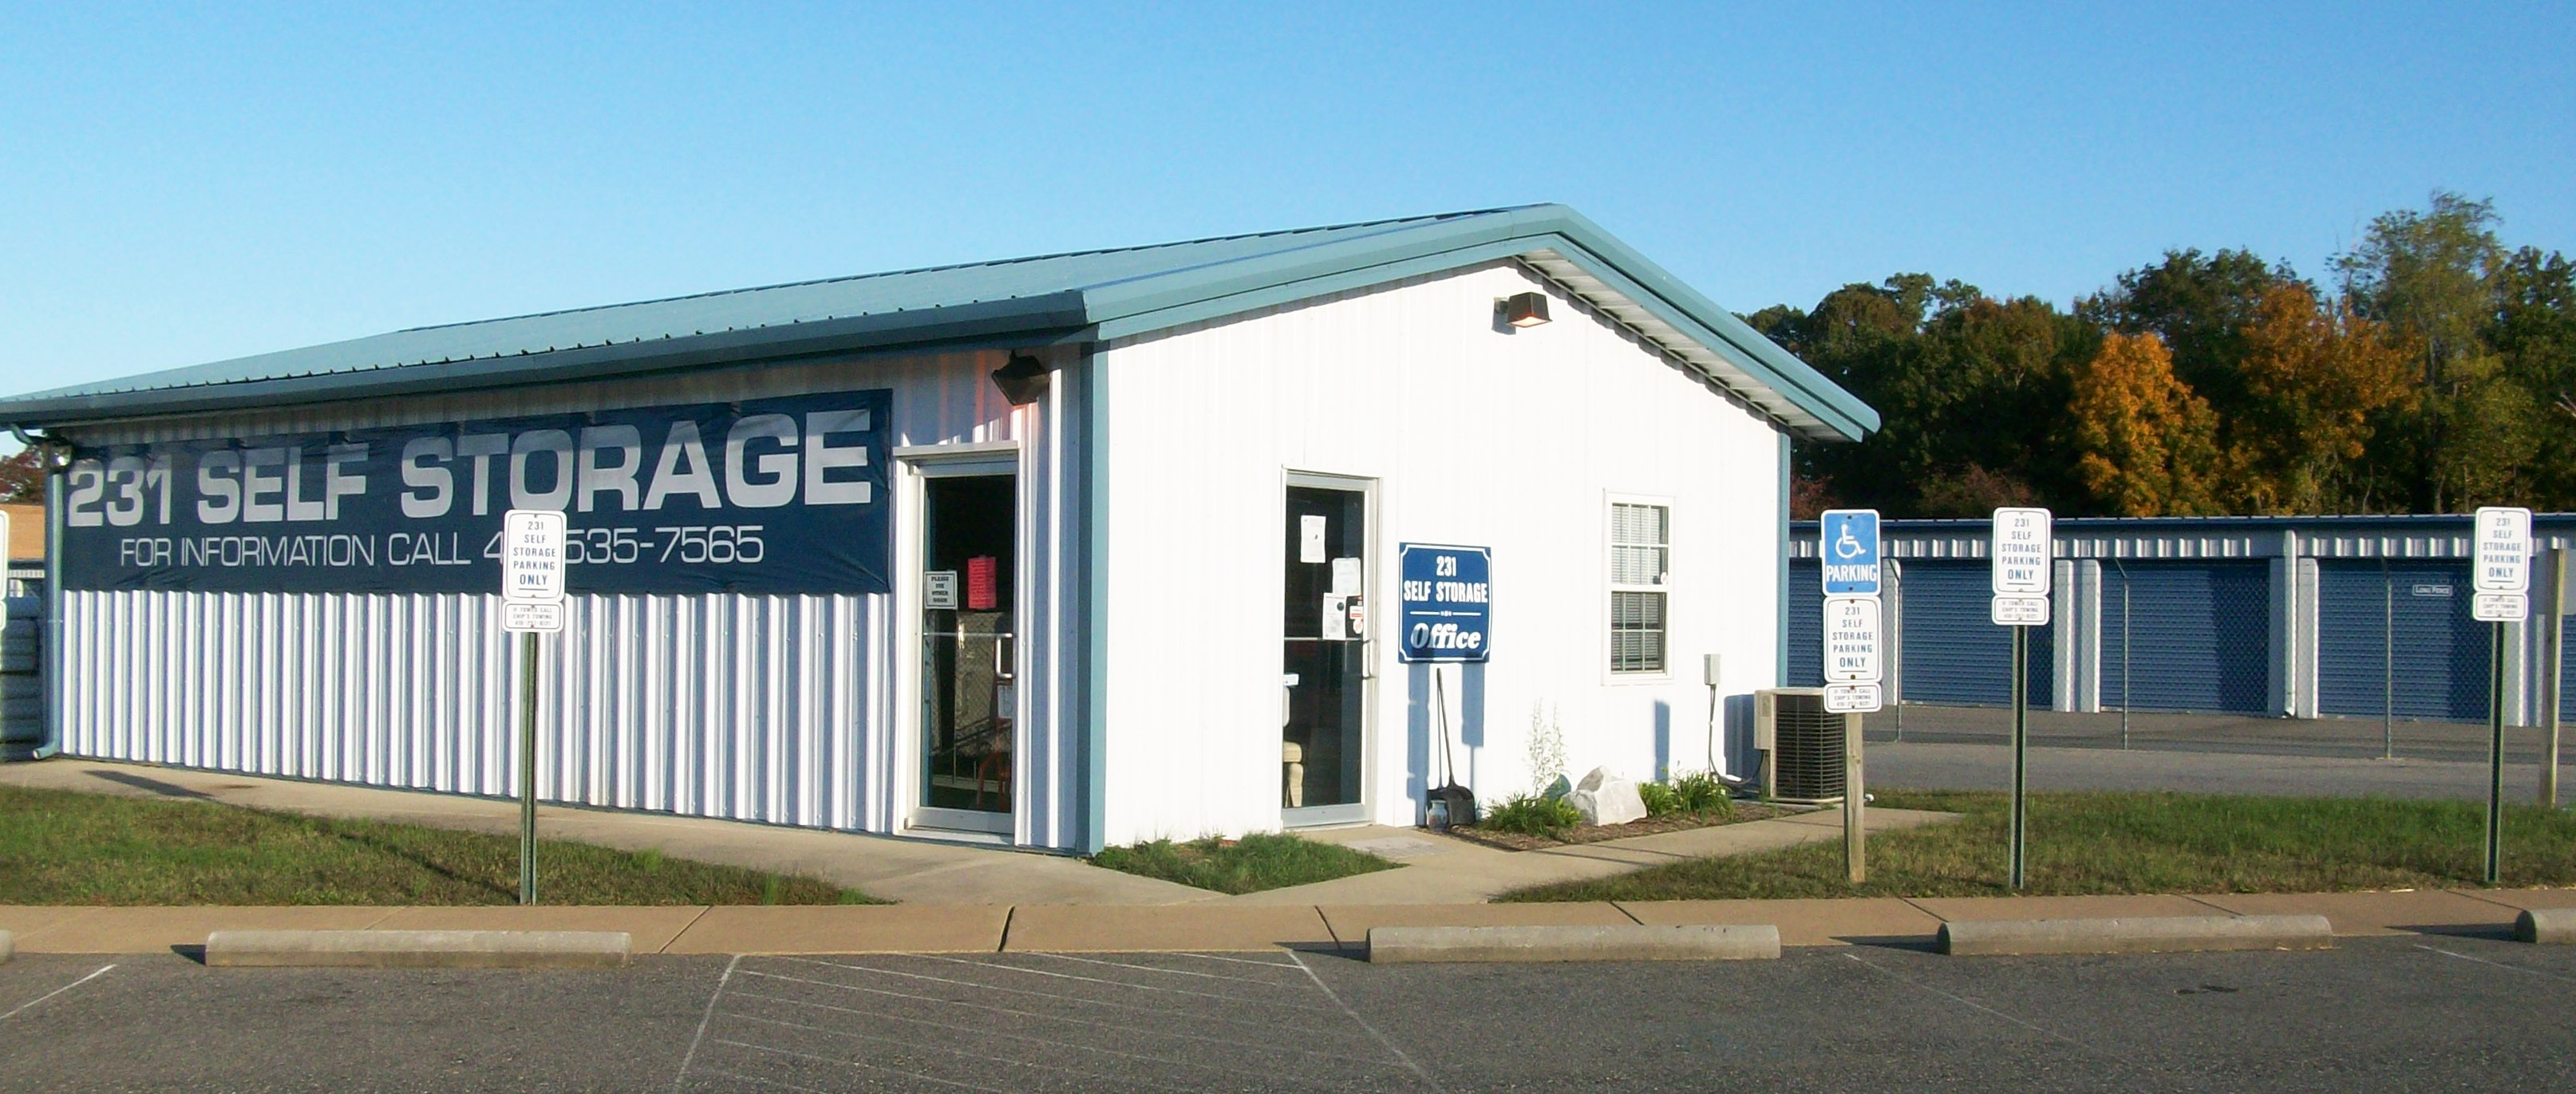 231 Self Storage Is Located Off Rt 231 In The Front Of The Calvert County  Industrial Park In Prince Frederick, MD.